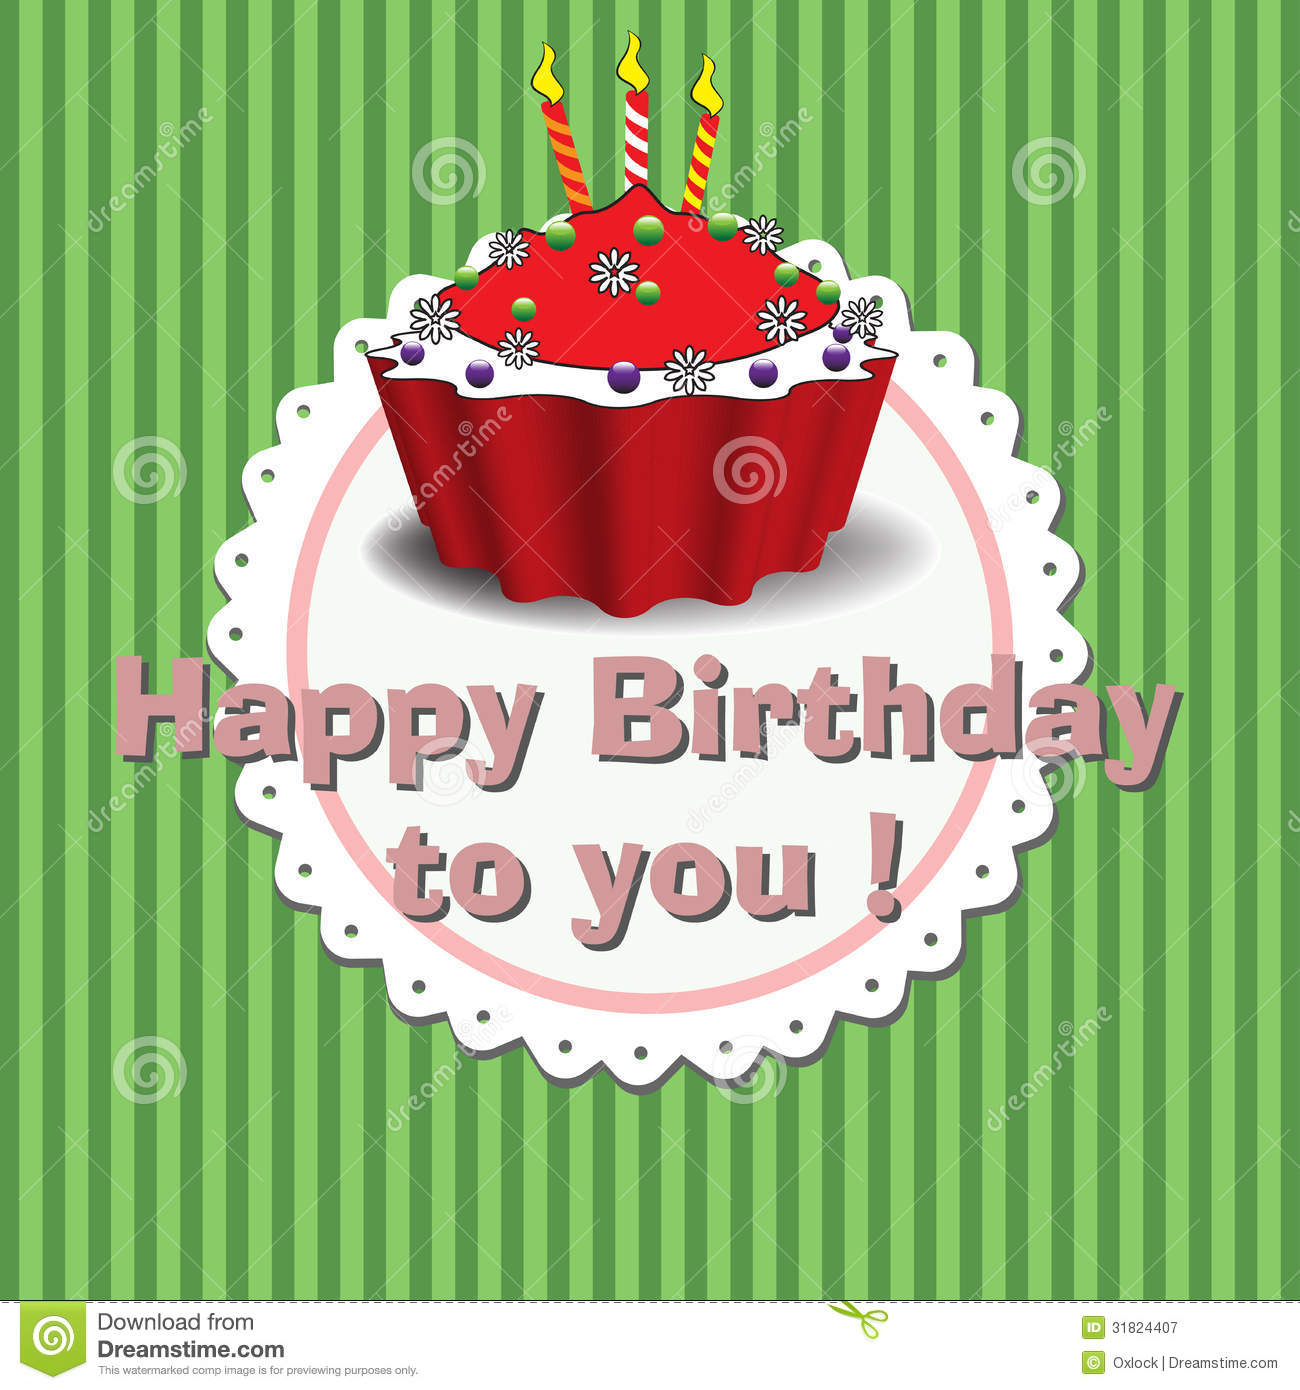 Happy Birthday To You Stock Vector. Image Of Design